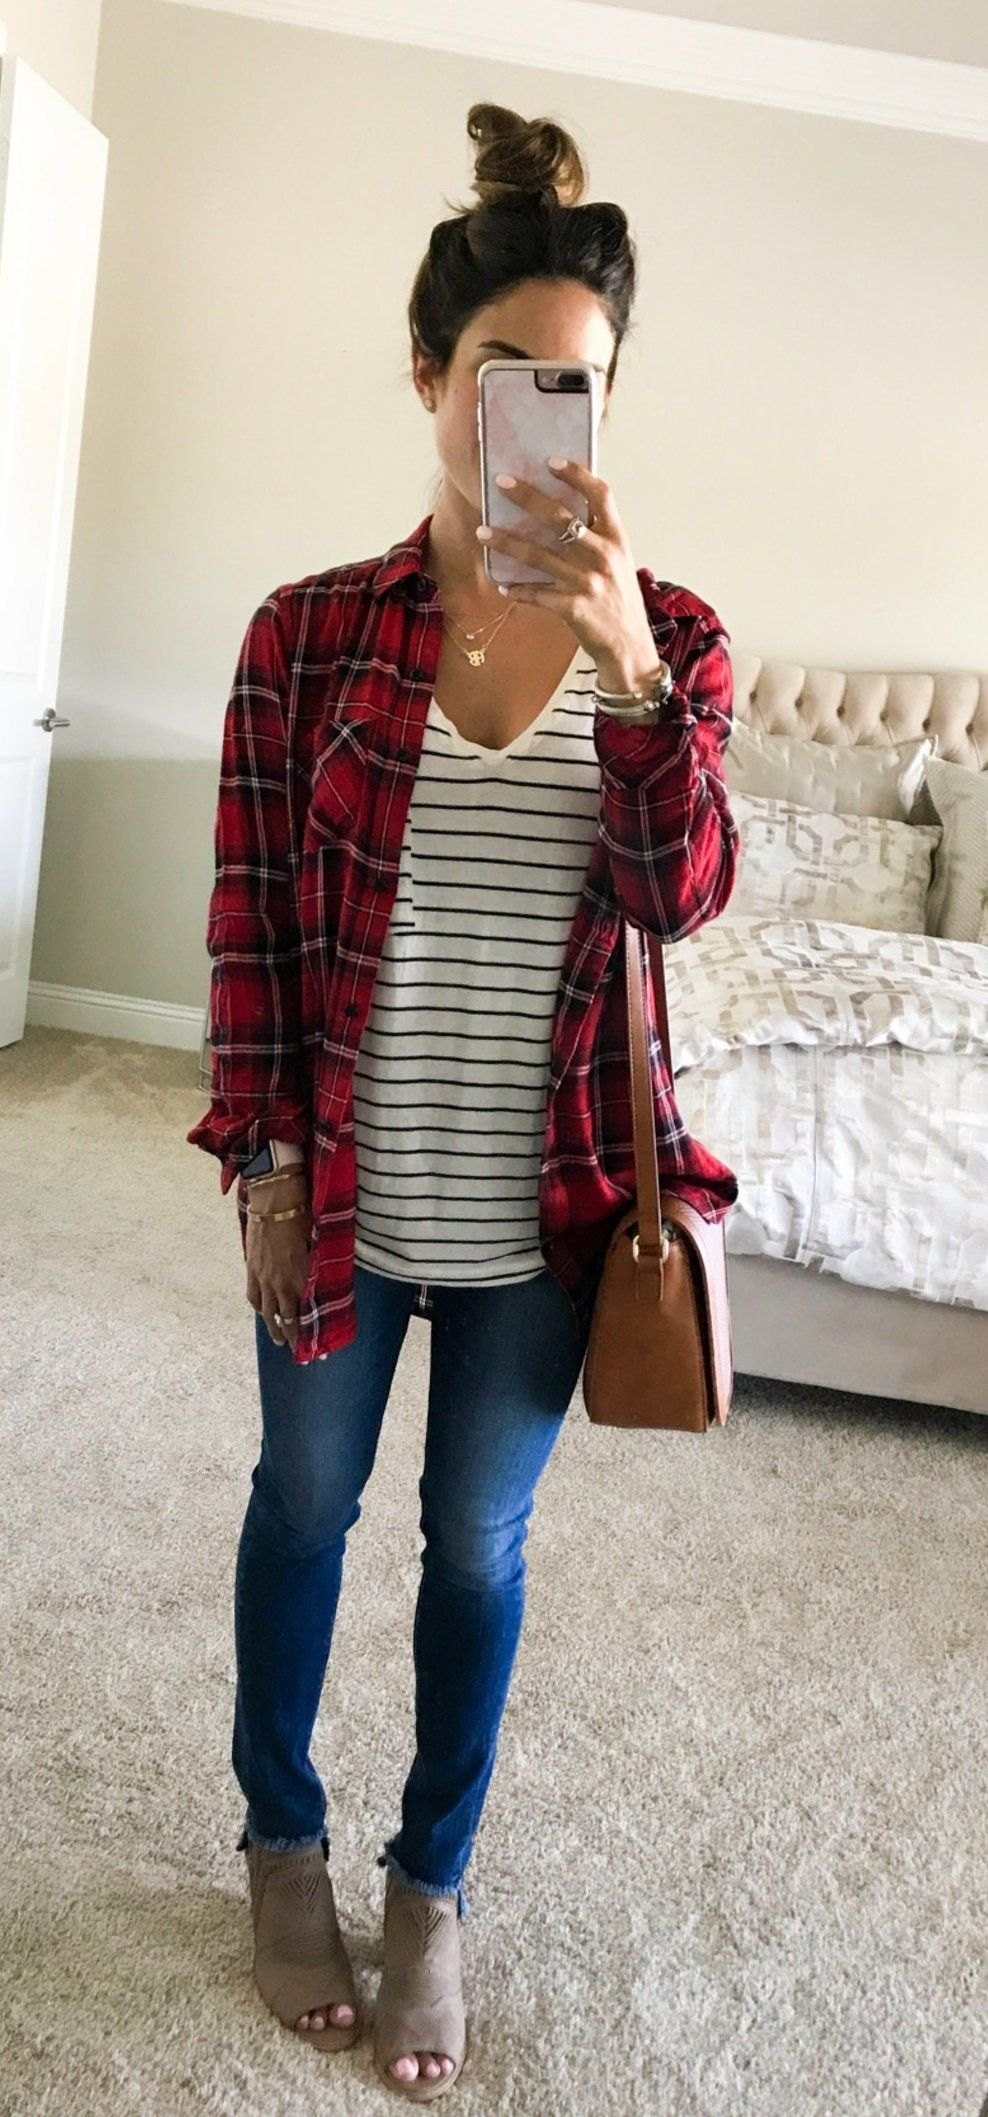 102 Best Fashion images in 2019 | Simple fall outfits, Black